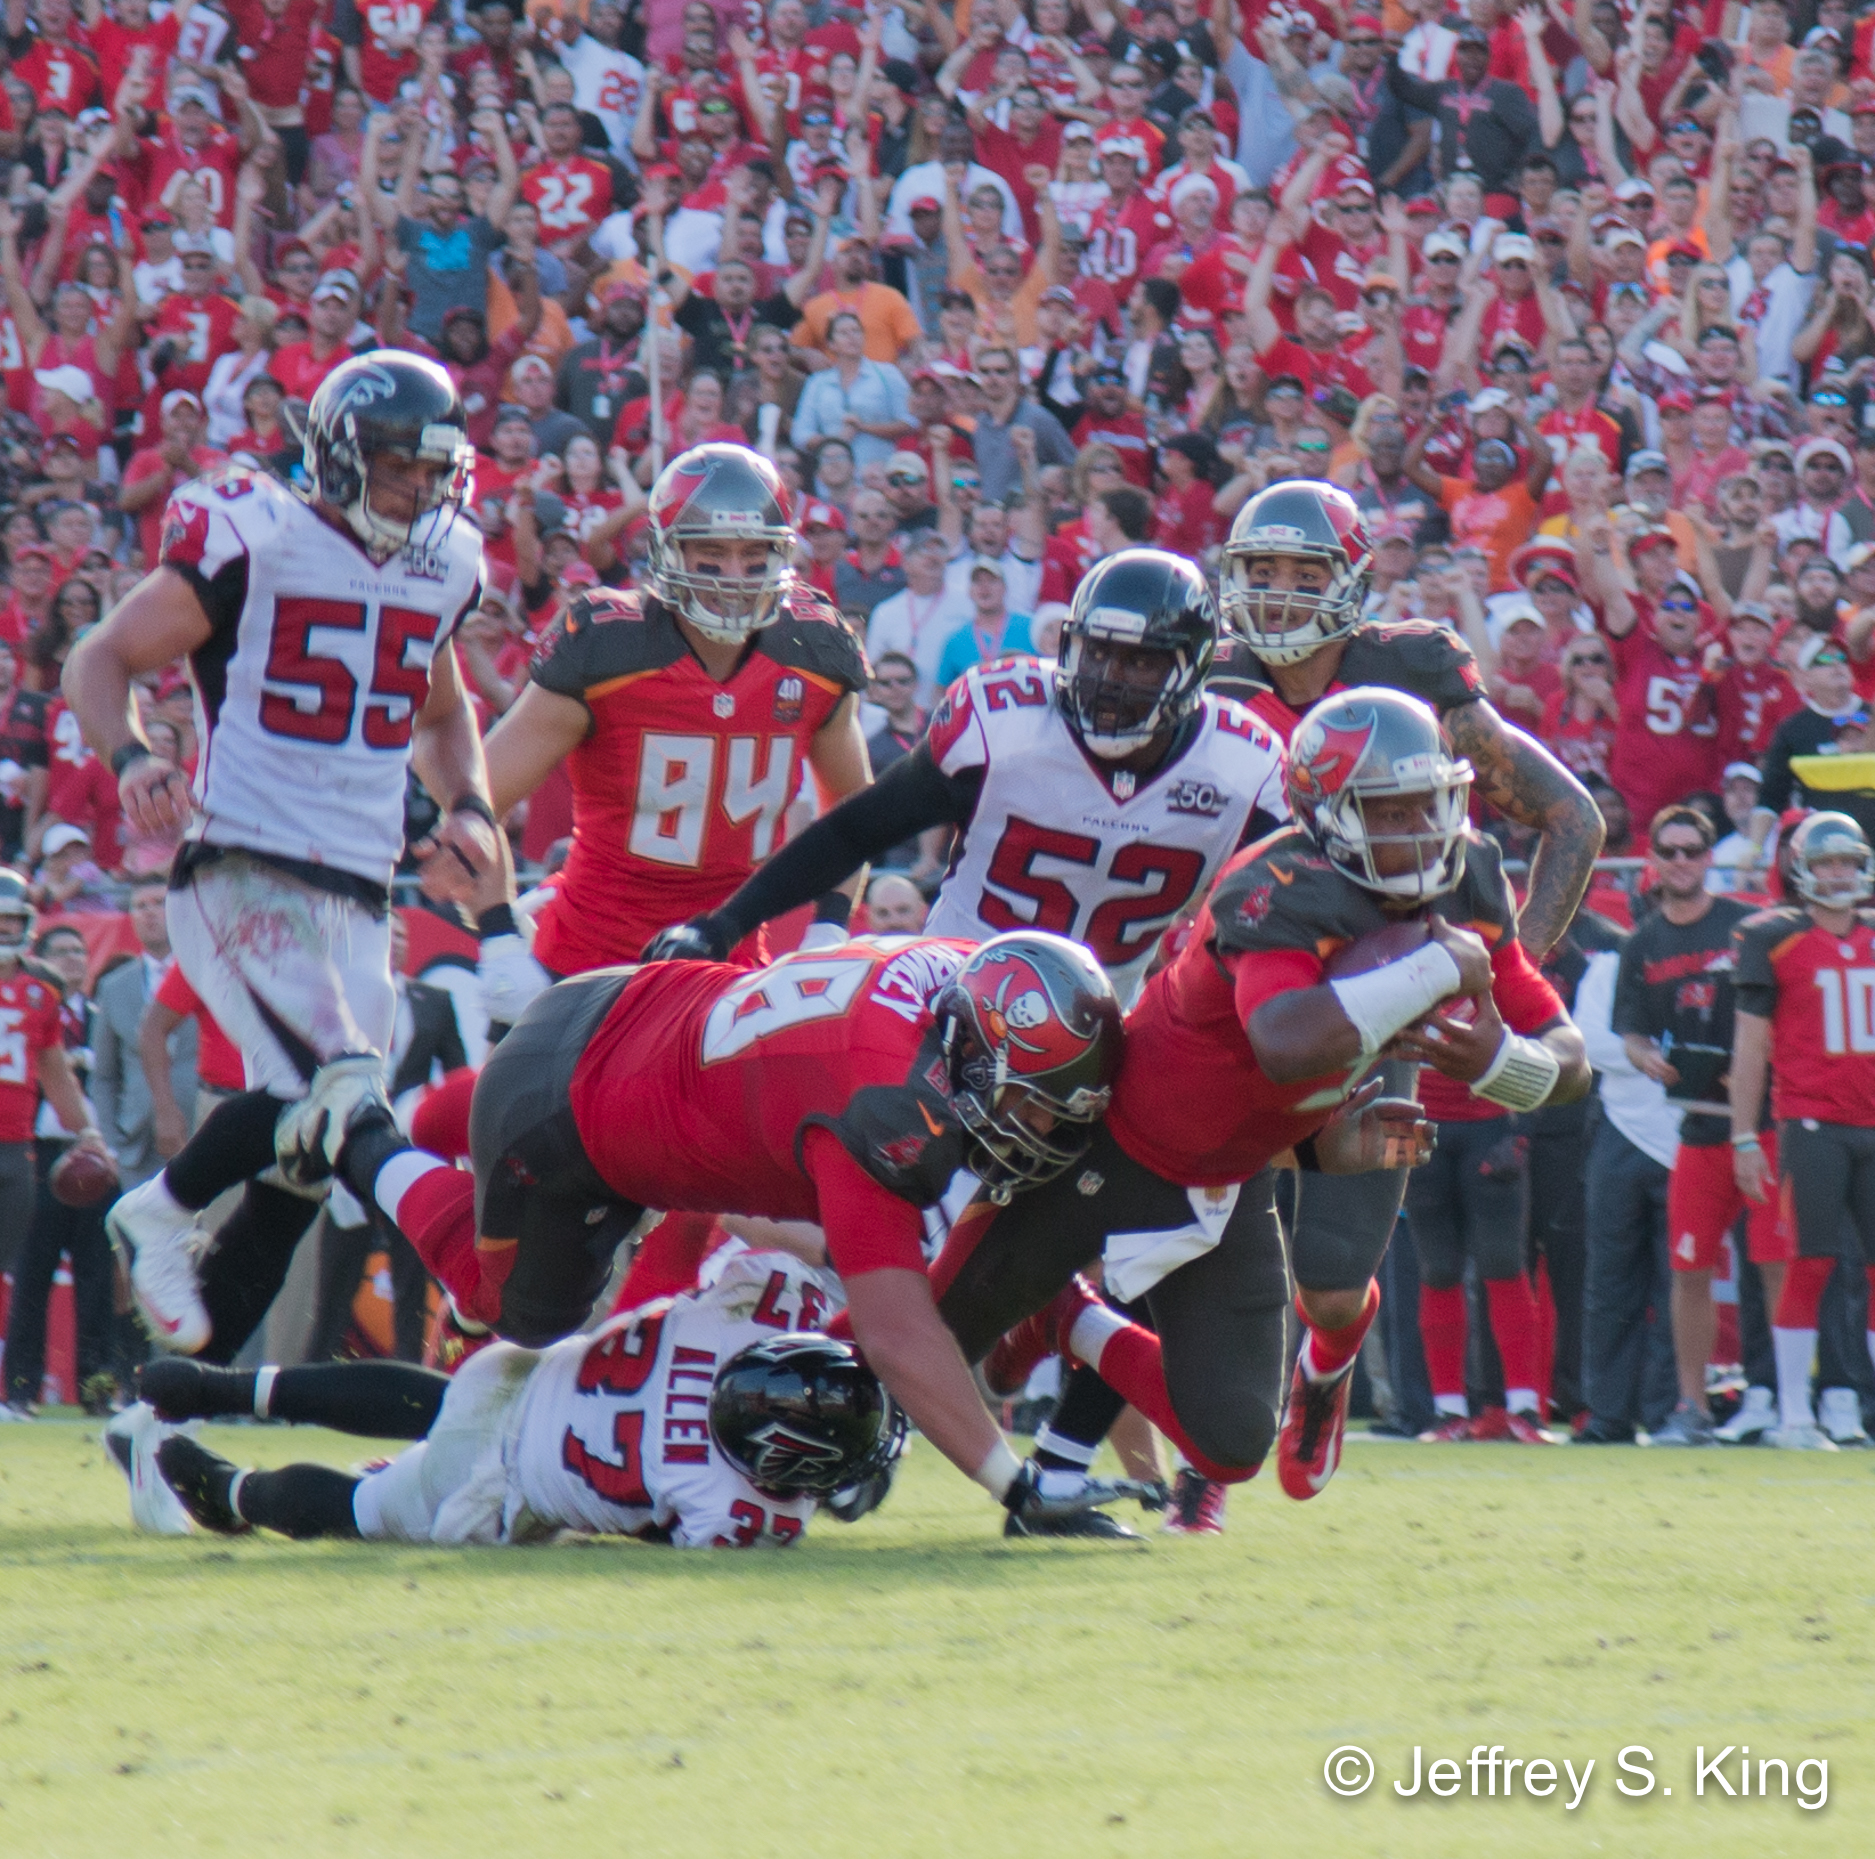 Winston's 20-yard run on third-and-19 helped the Bucs win.